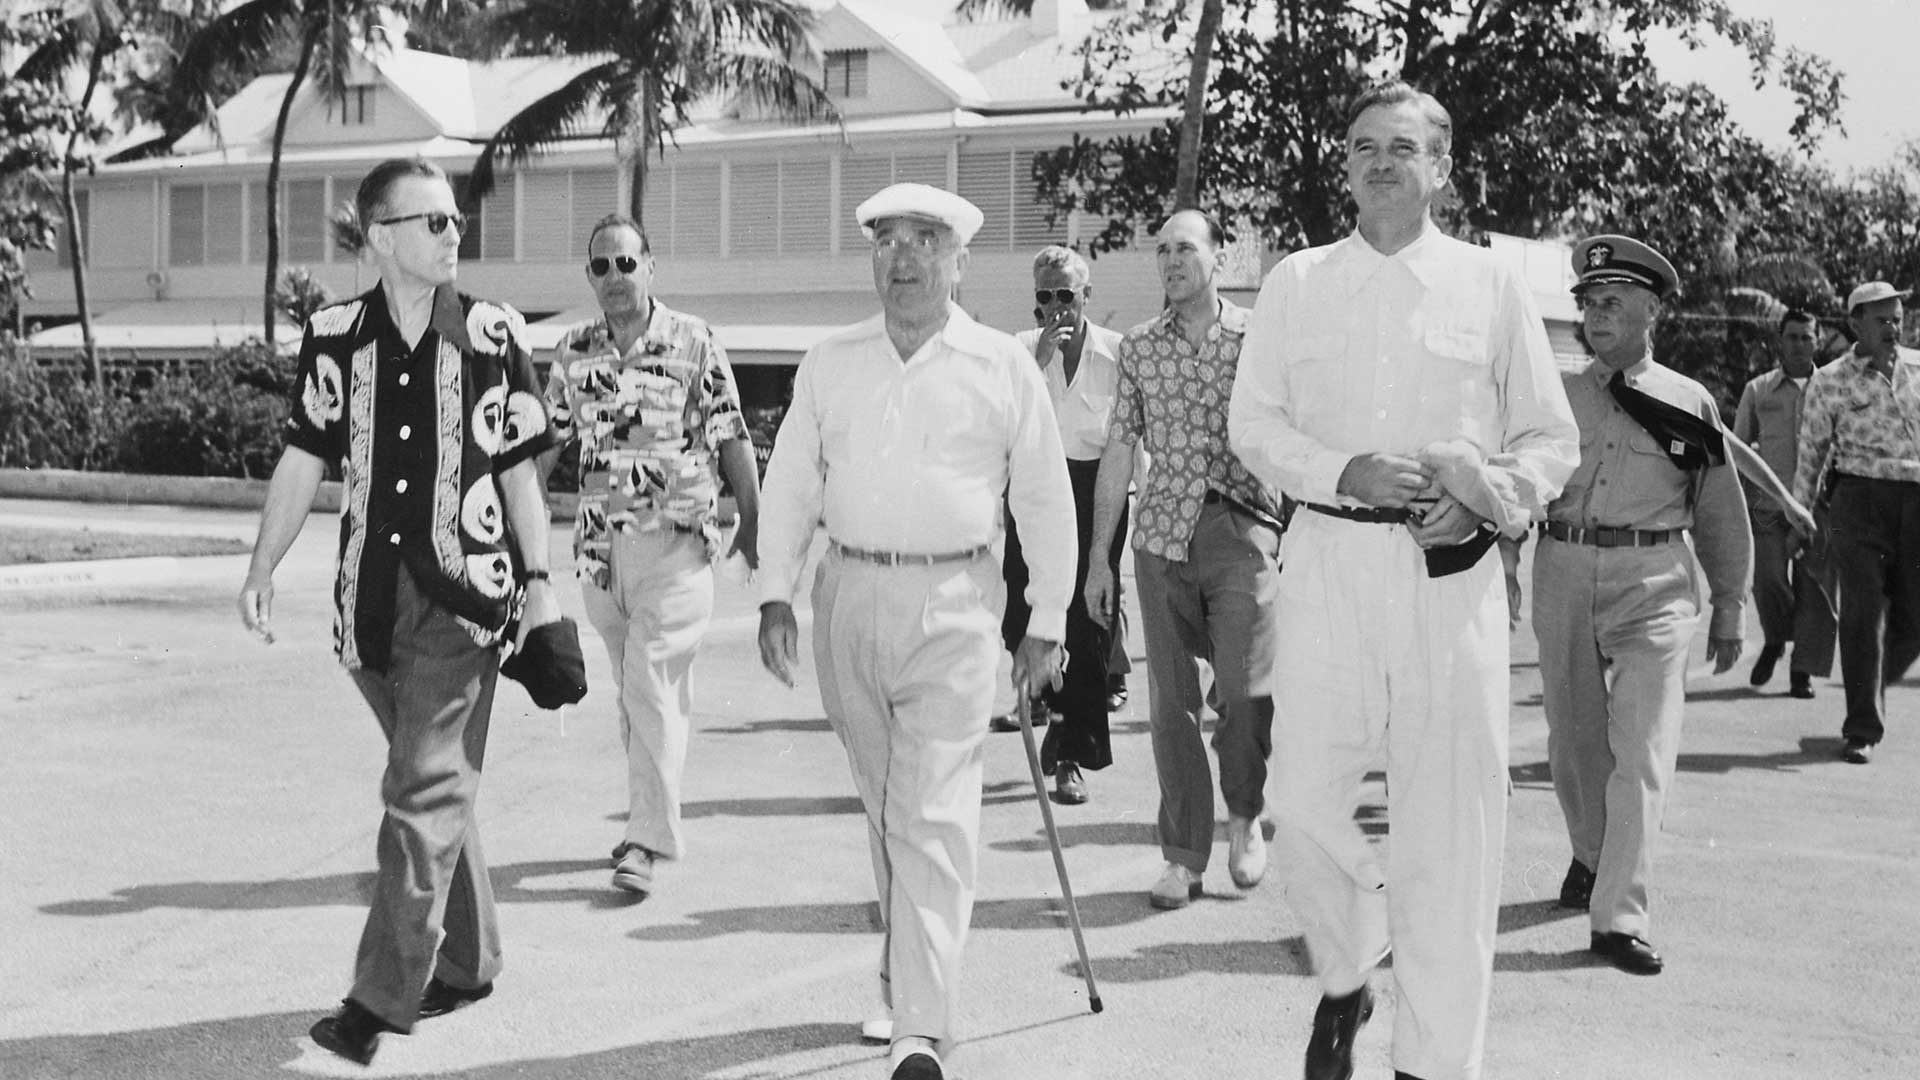 Harry S Truman taking his morning walk with friends through Key West